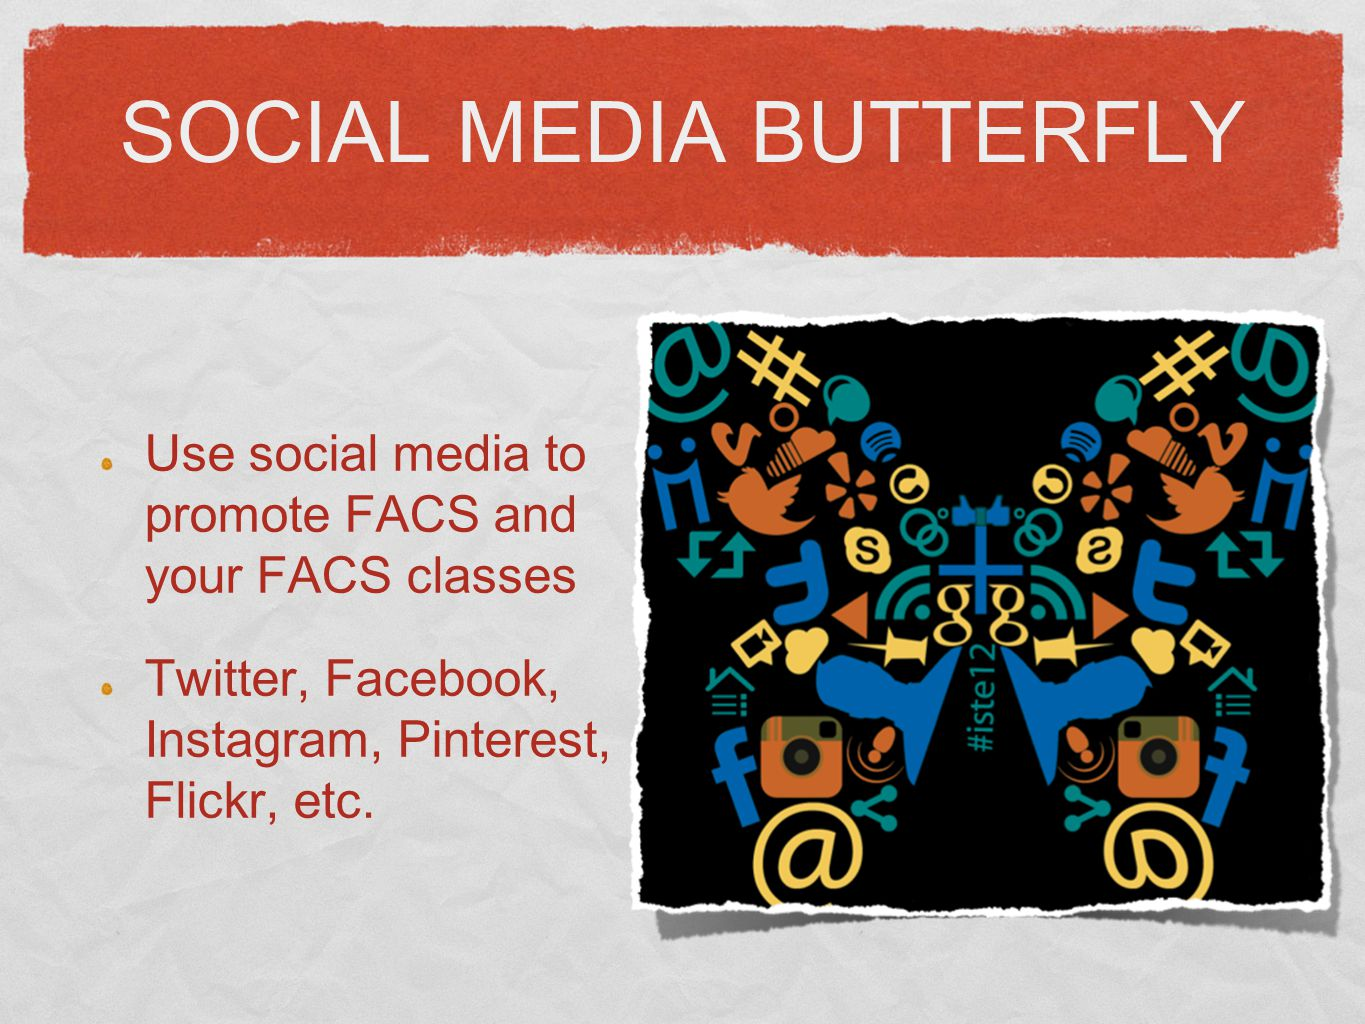 SOCIAL MEDIA BUTTERFLY Use social media to promote FACS and your FACS classes Twitter, Facebook, Instagram, Pinterest, Flickr, etc.